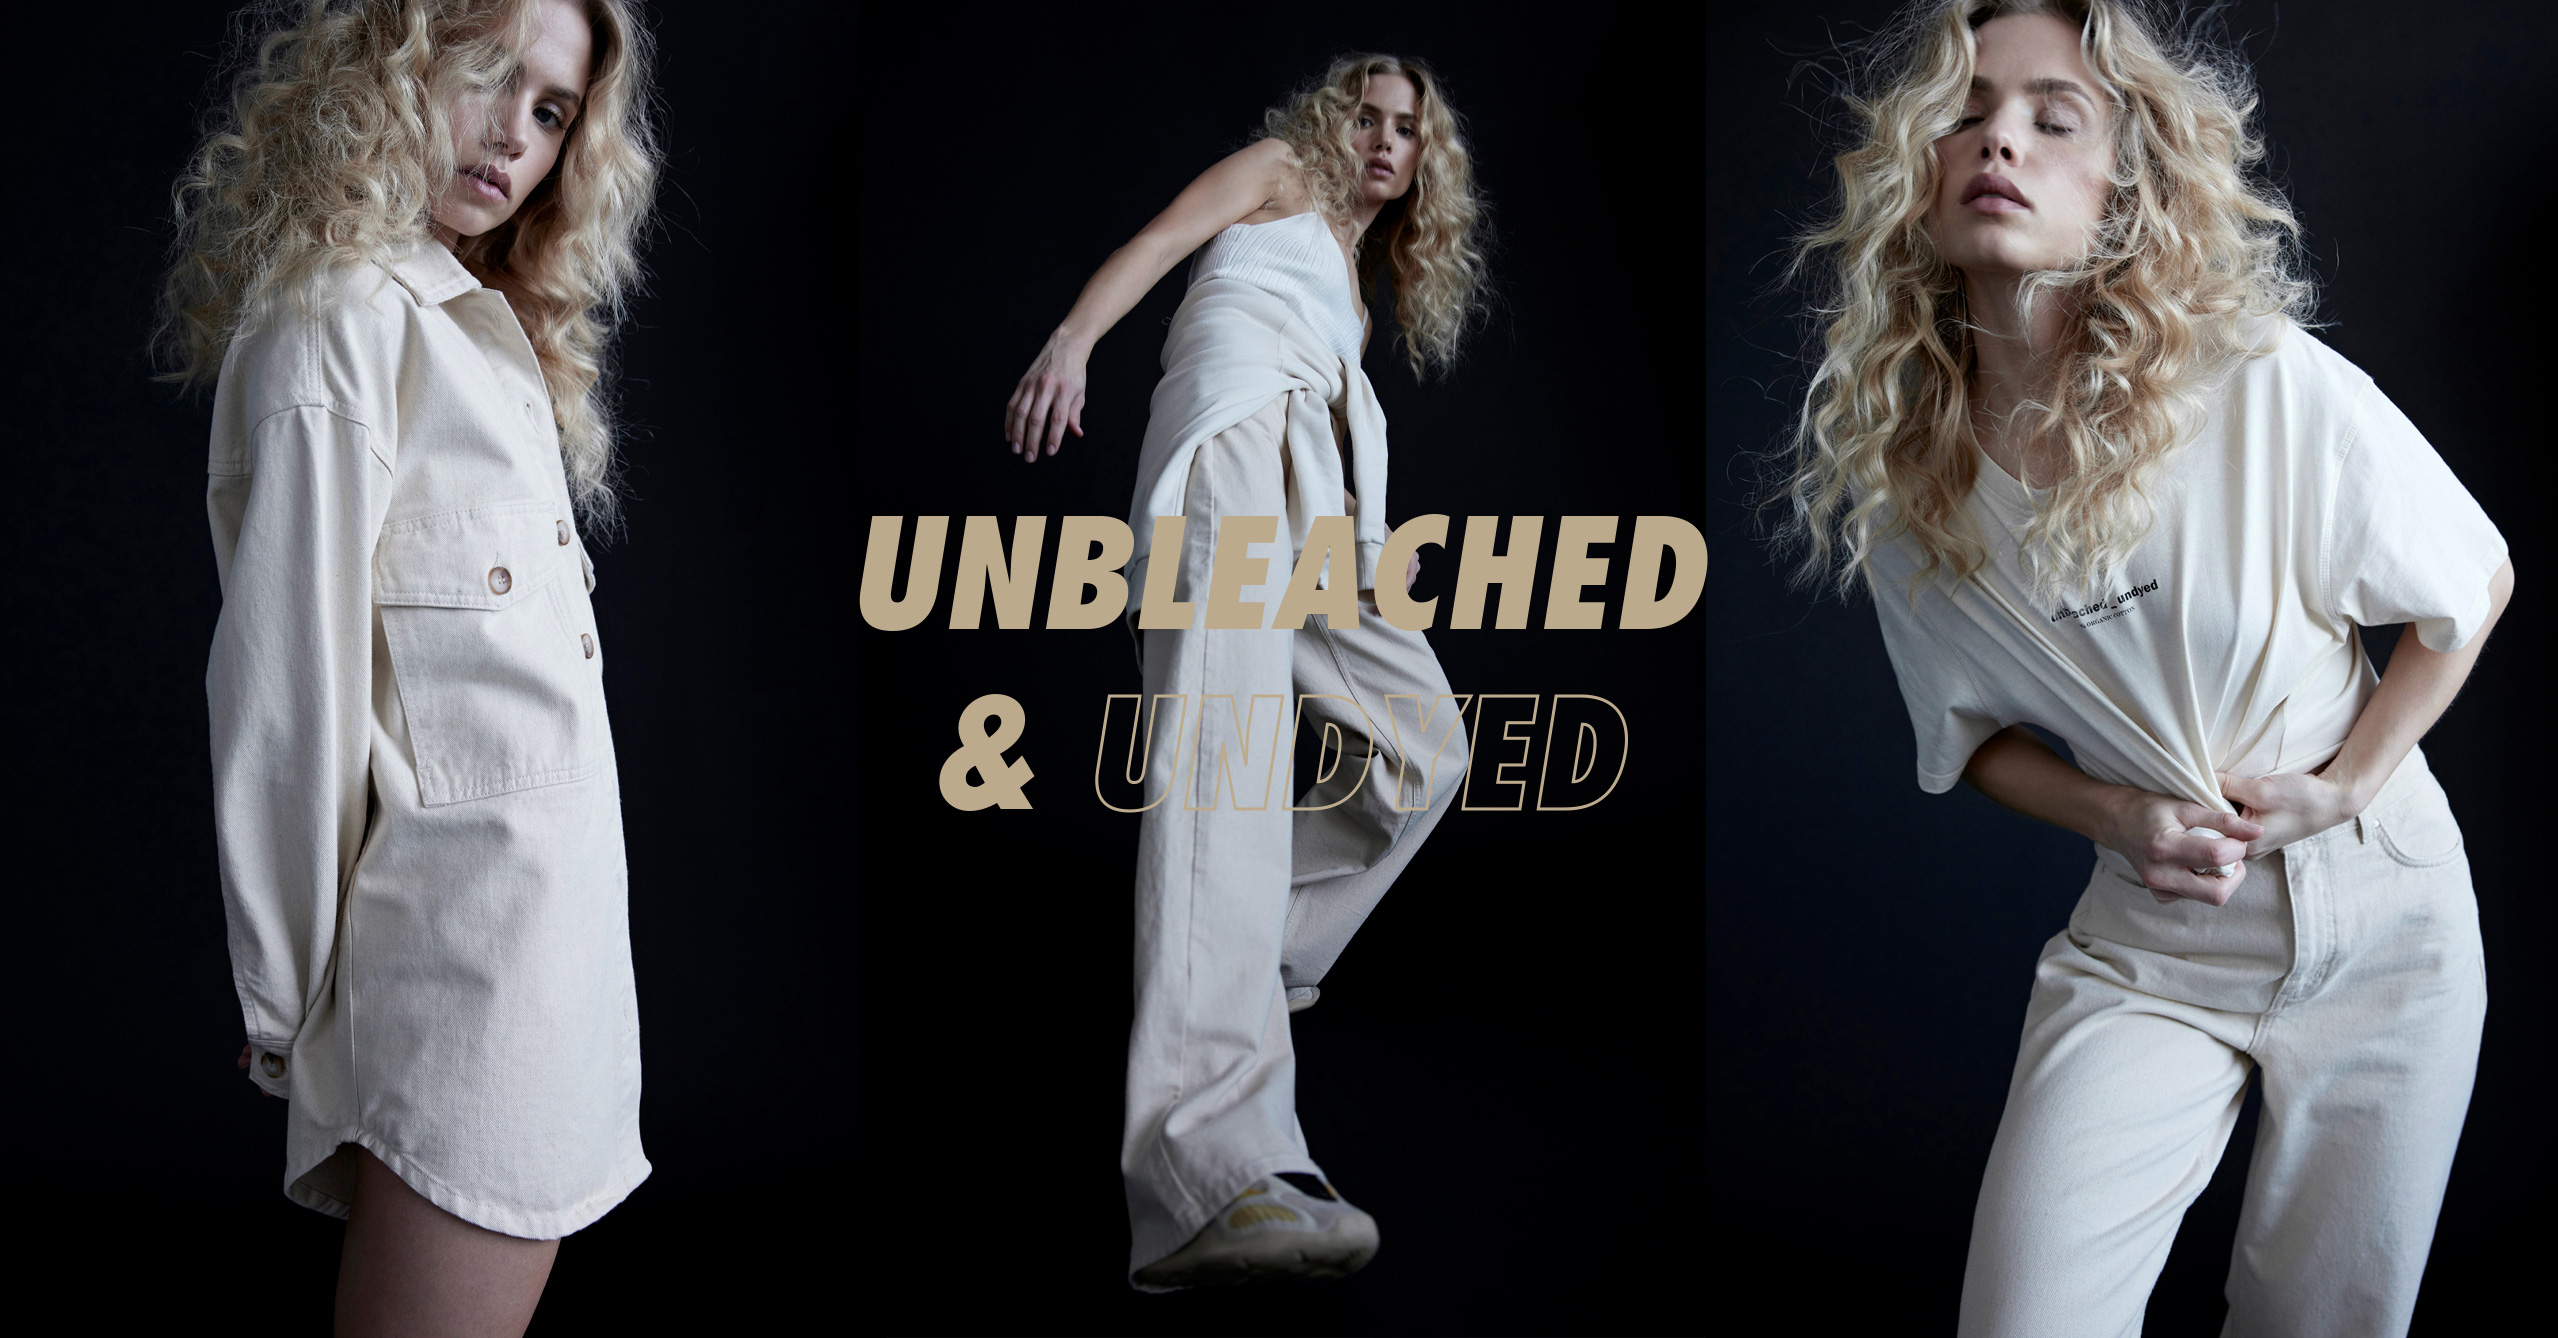 Unbleached undyed women's fashion